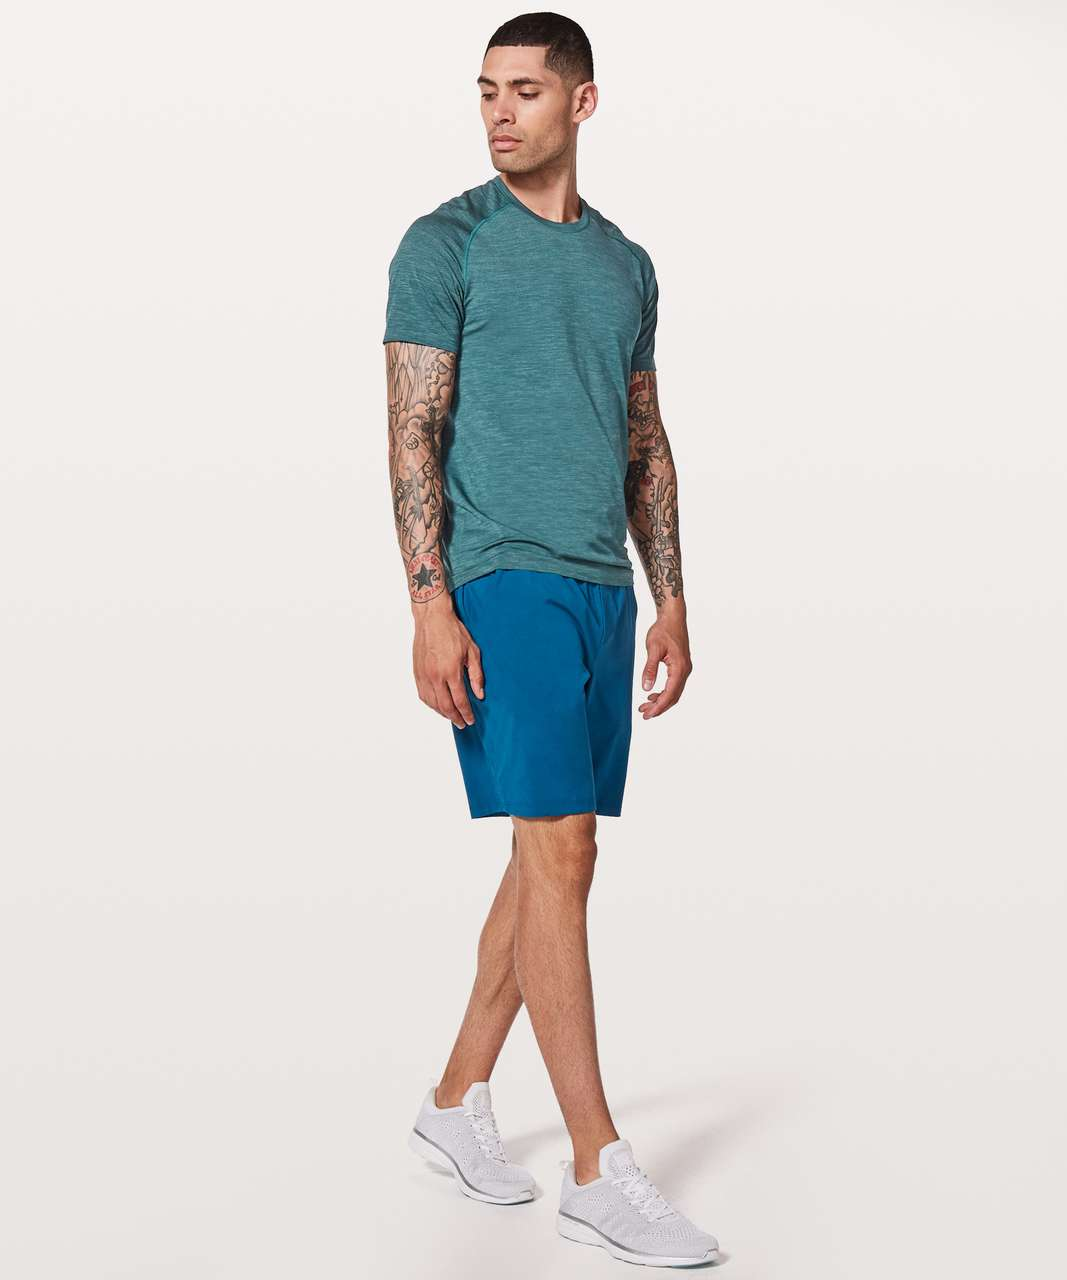 Lululemon Metal Vent Tech Short Sleeve - Mystic Green / Mariner